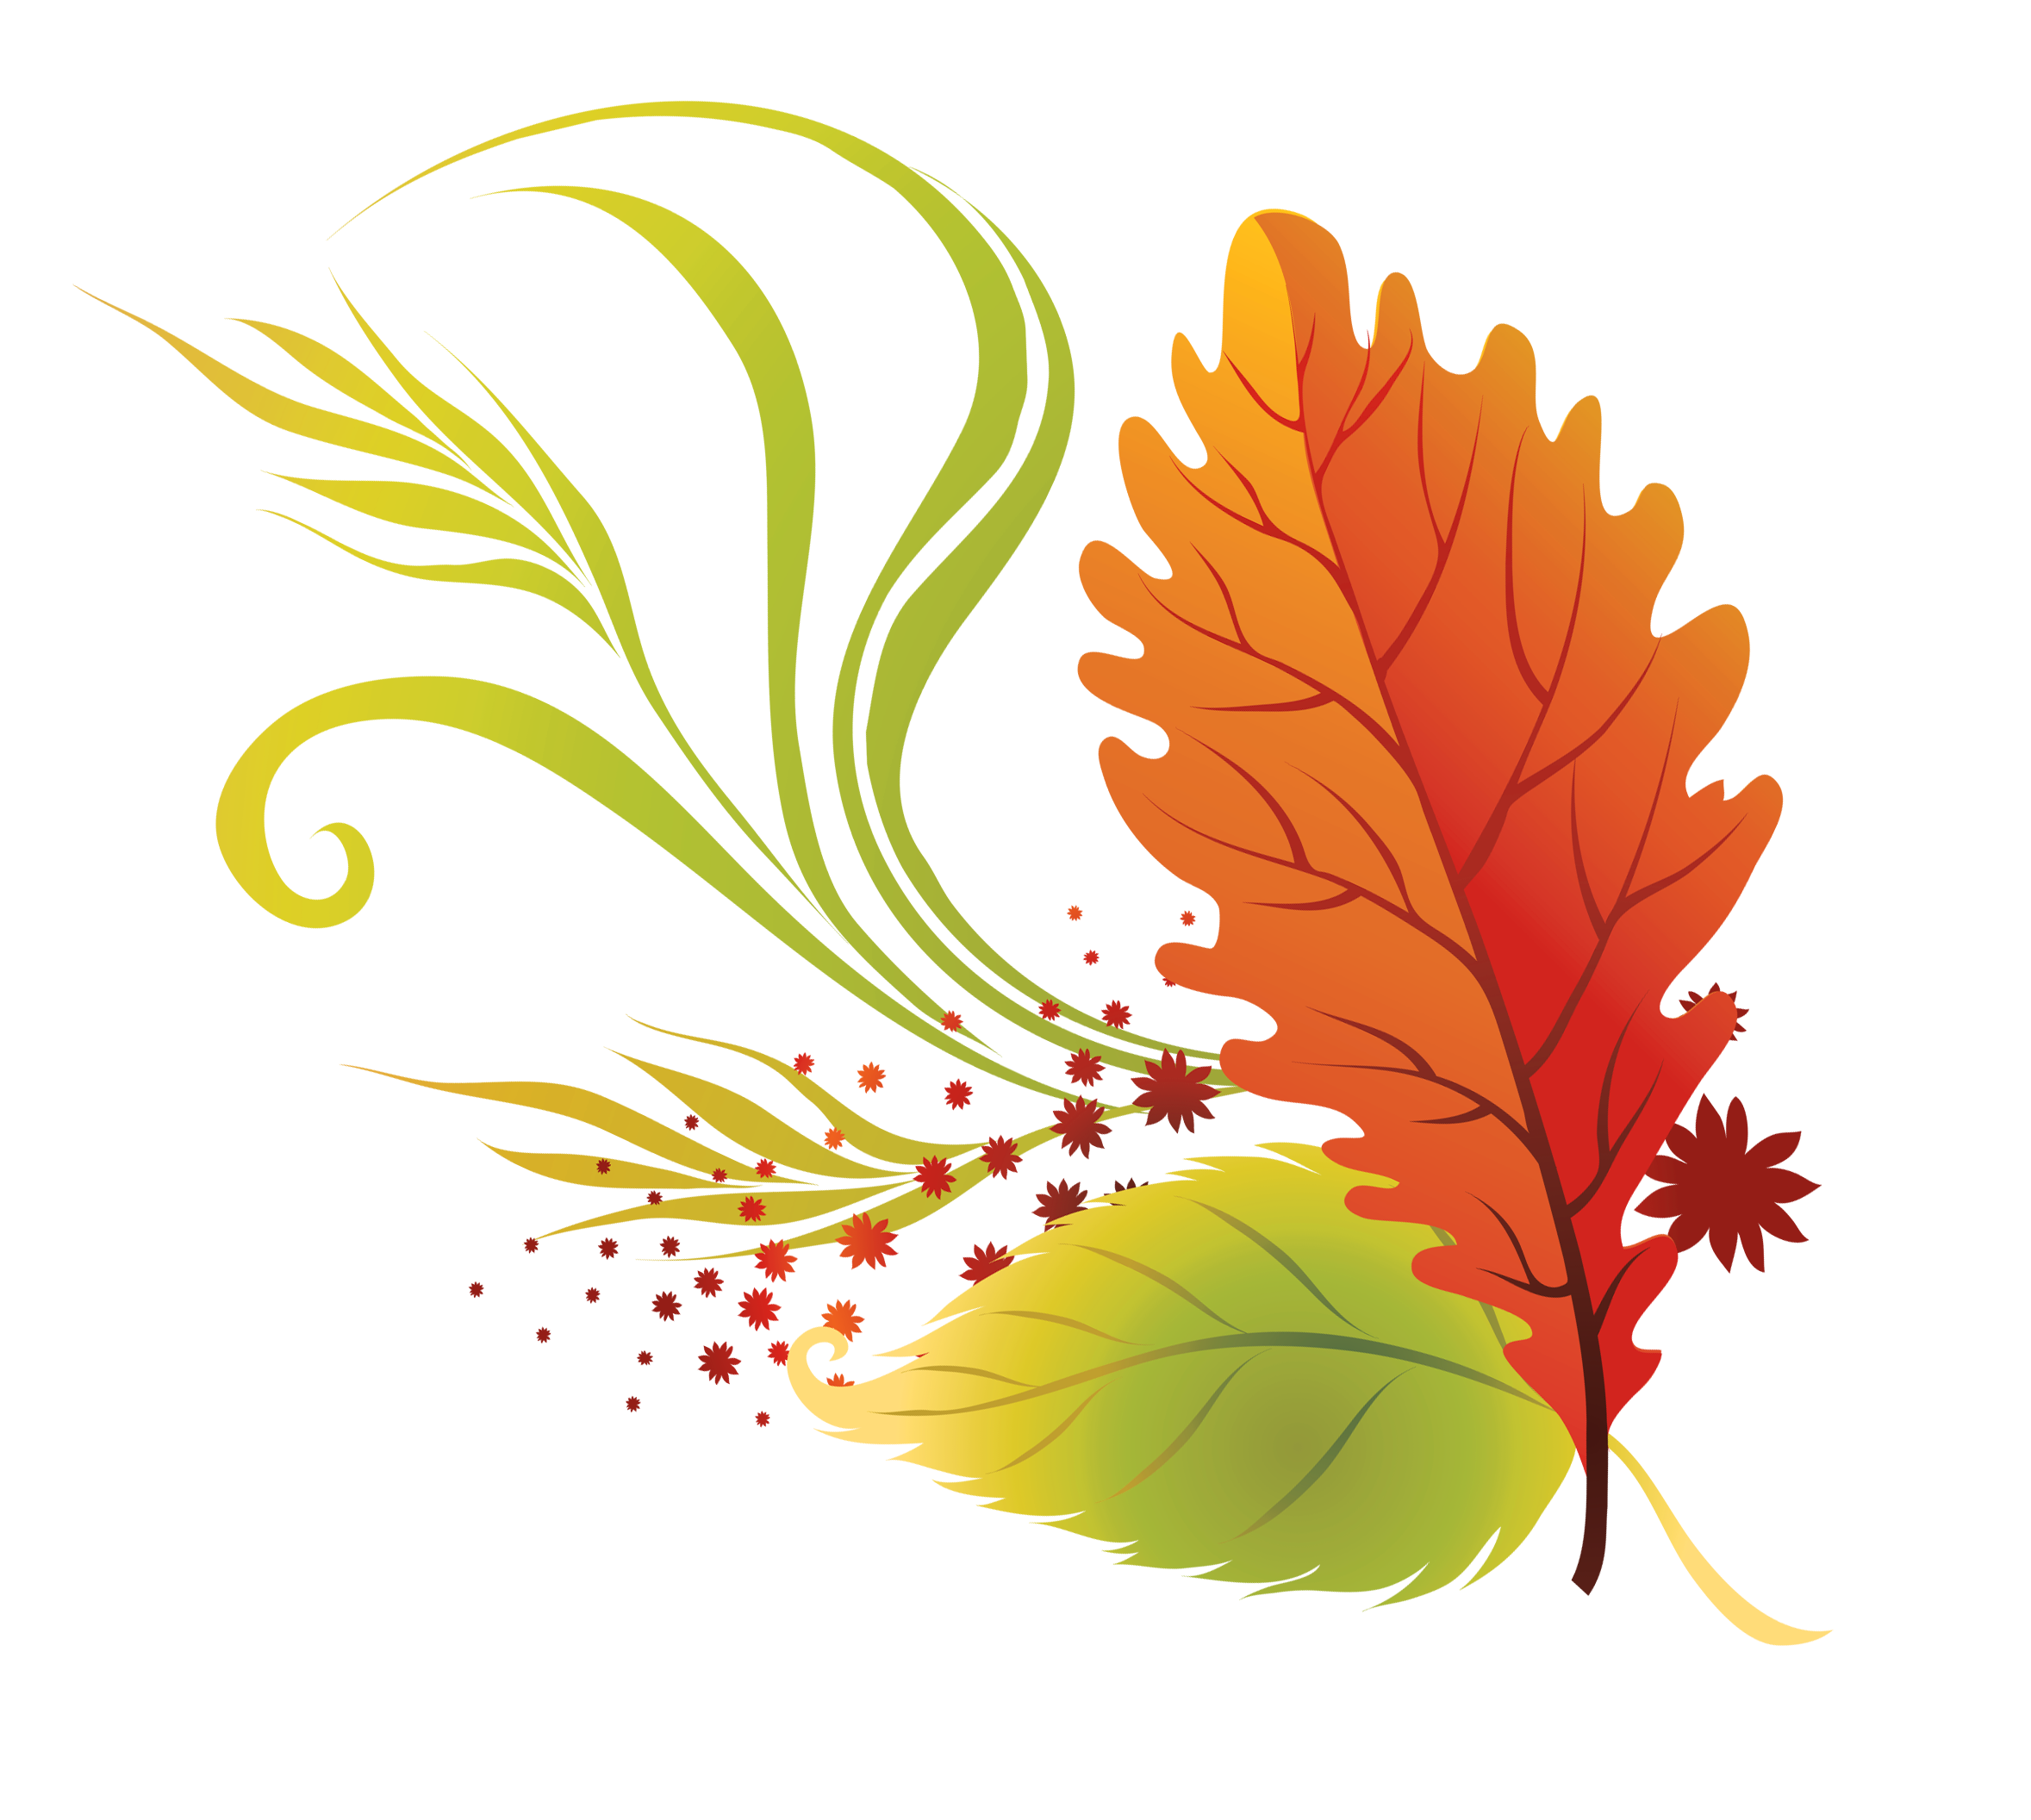 Fall clipart free clipart image.